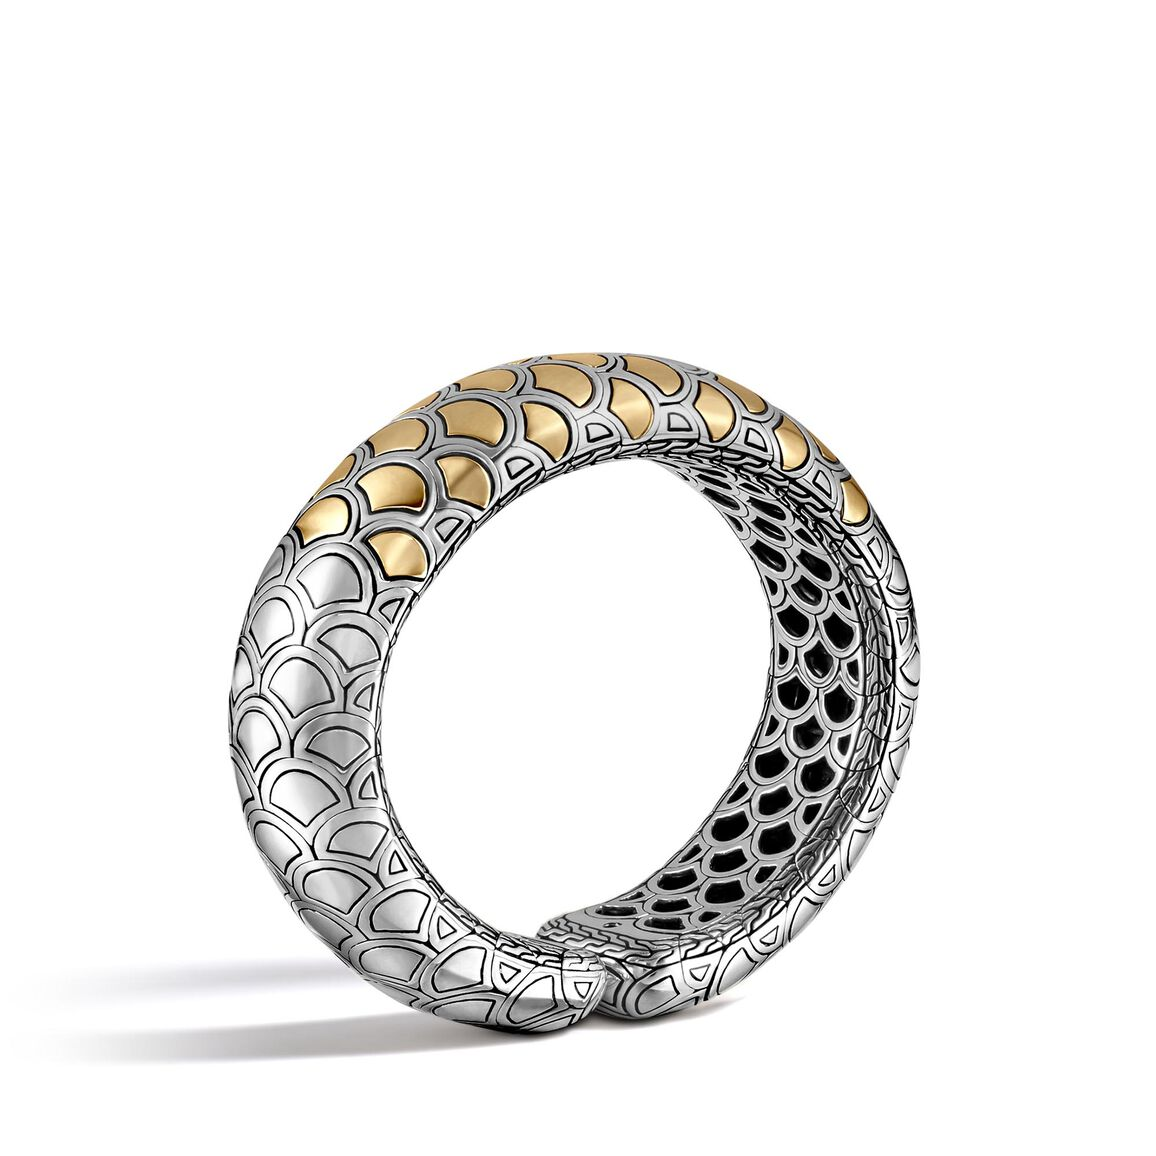 Legends Naga 21MM Cuff in Silver and 18K Gold